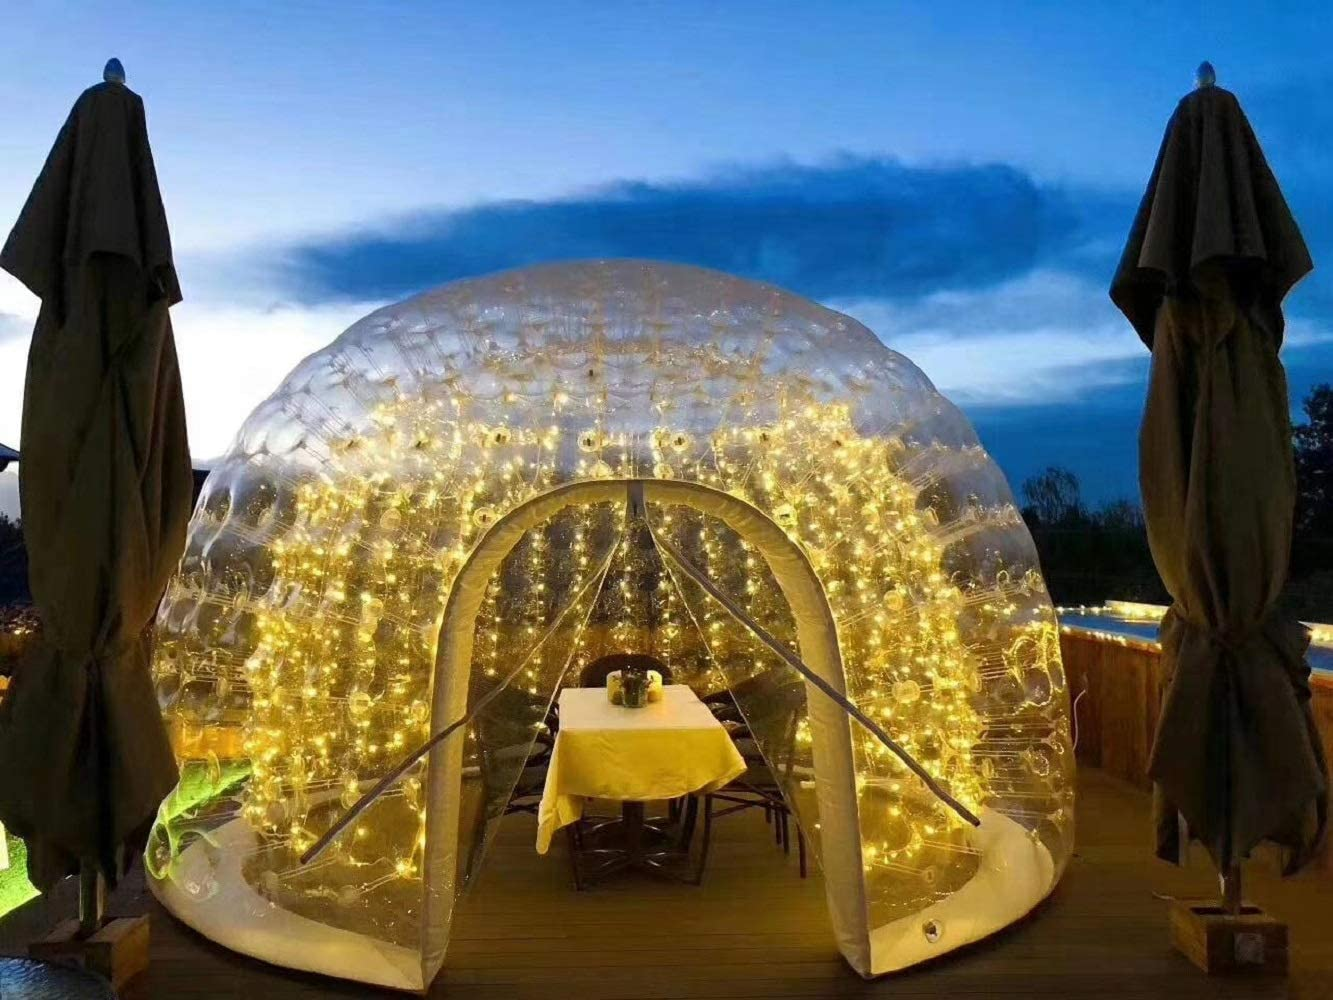 Foammaker Inflatable Transparent Bubble Tent,Double Layer Spherical Garden Igloo 360 Dome, Outdoor Luxurious Semitransparent Scenic Holiday Home Garden Outdoor Camping